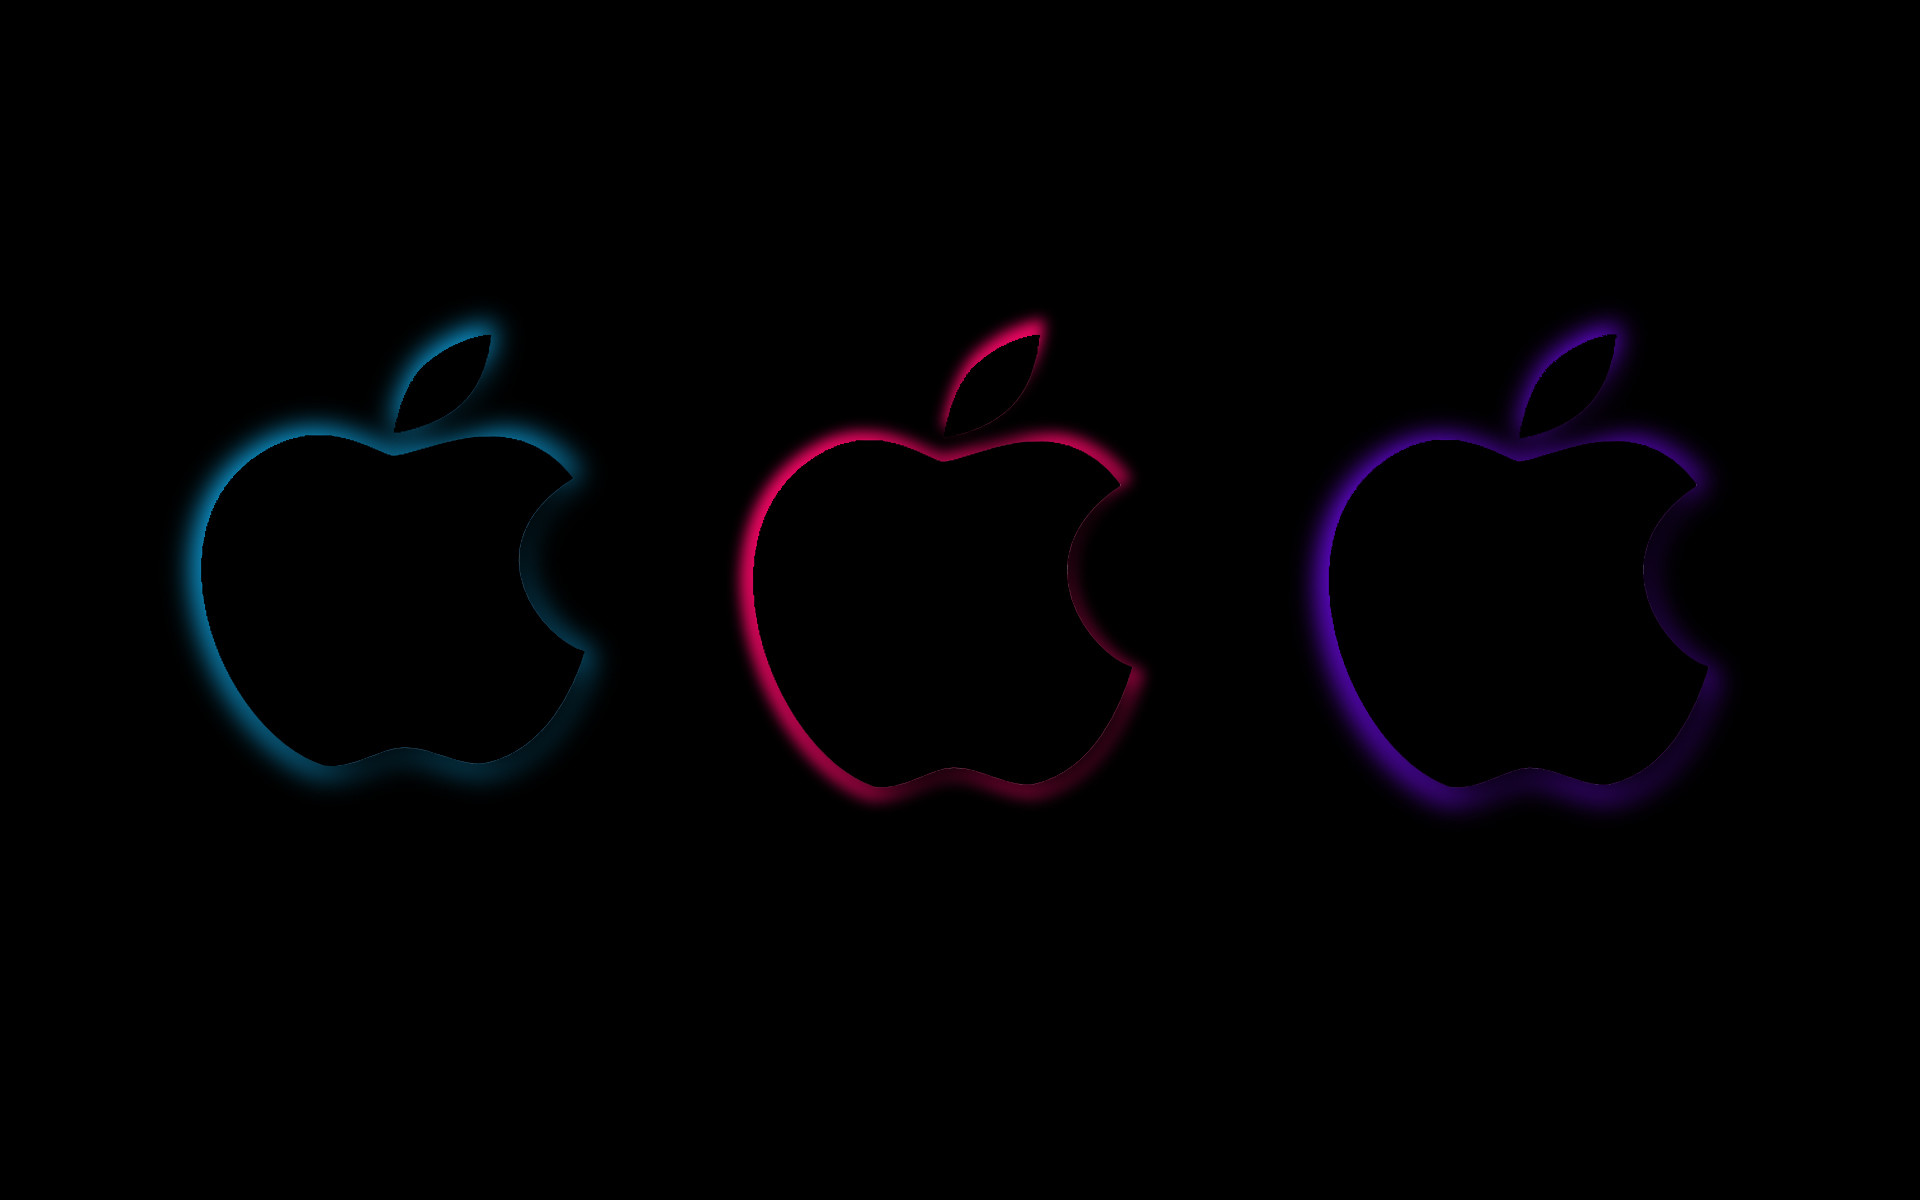 1920x1200 Apple Mac OS 3D light logo MAC OS Wallpapers HD, mac os wallpaper wide  screen